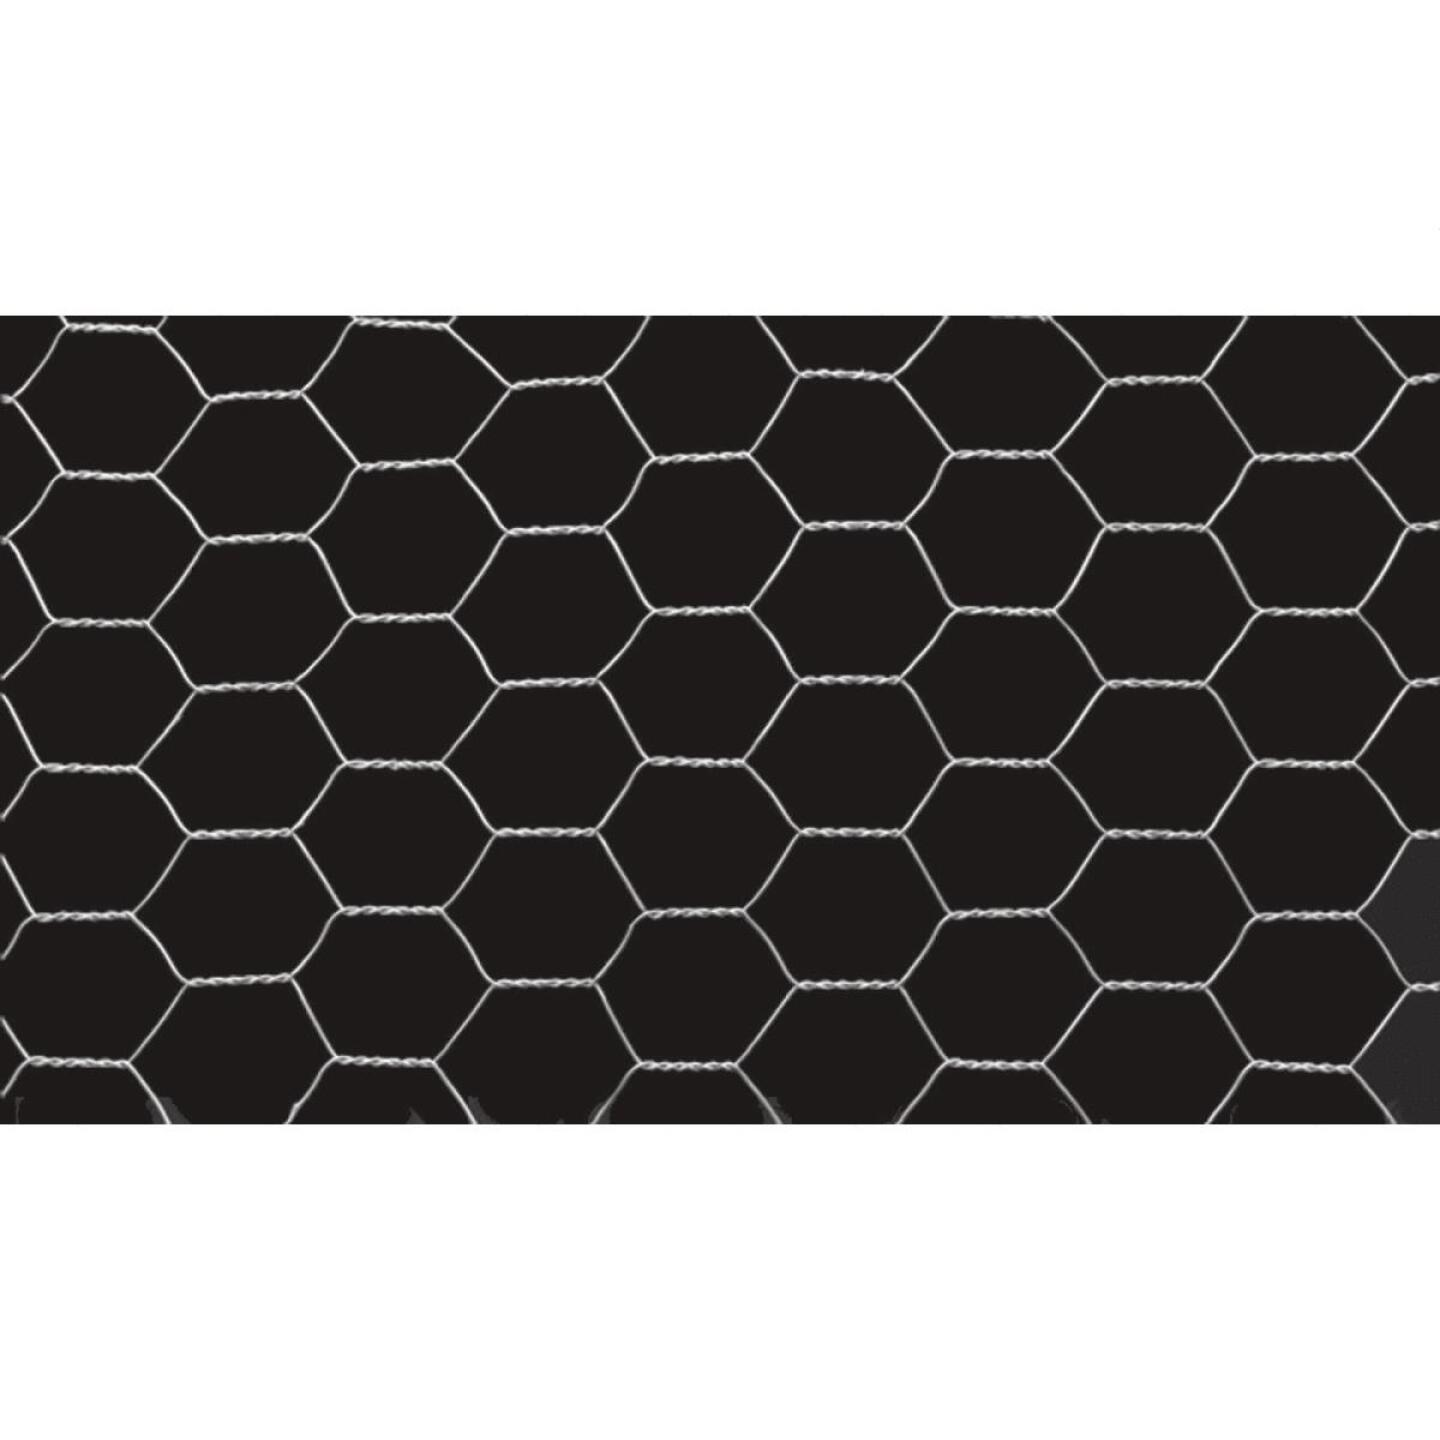 1/2 In. x 48 In. H. x 25 Ft. L. Hexagonal Wire Poultry Netting Image 2